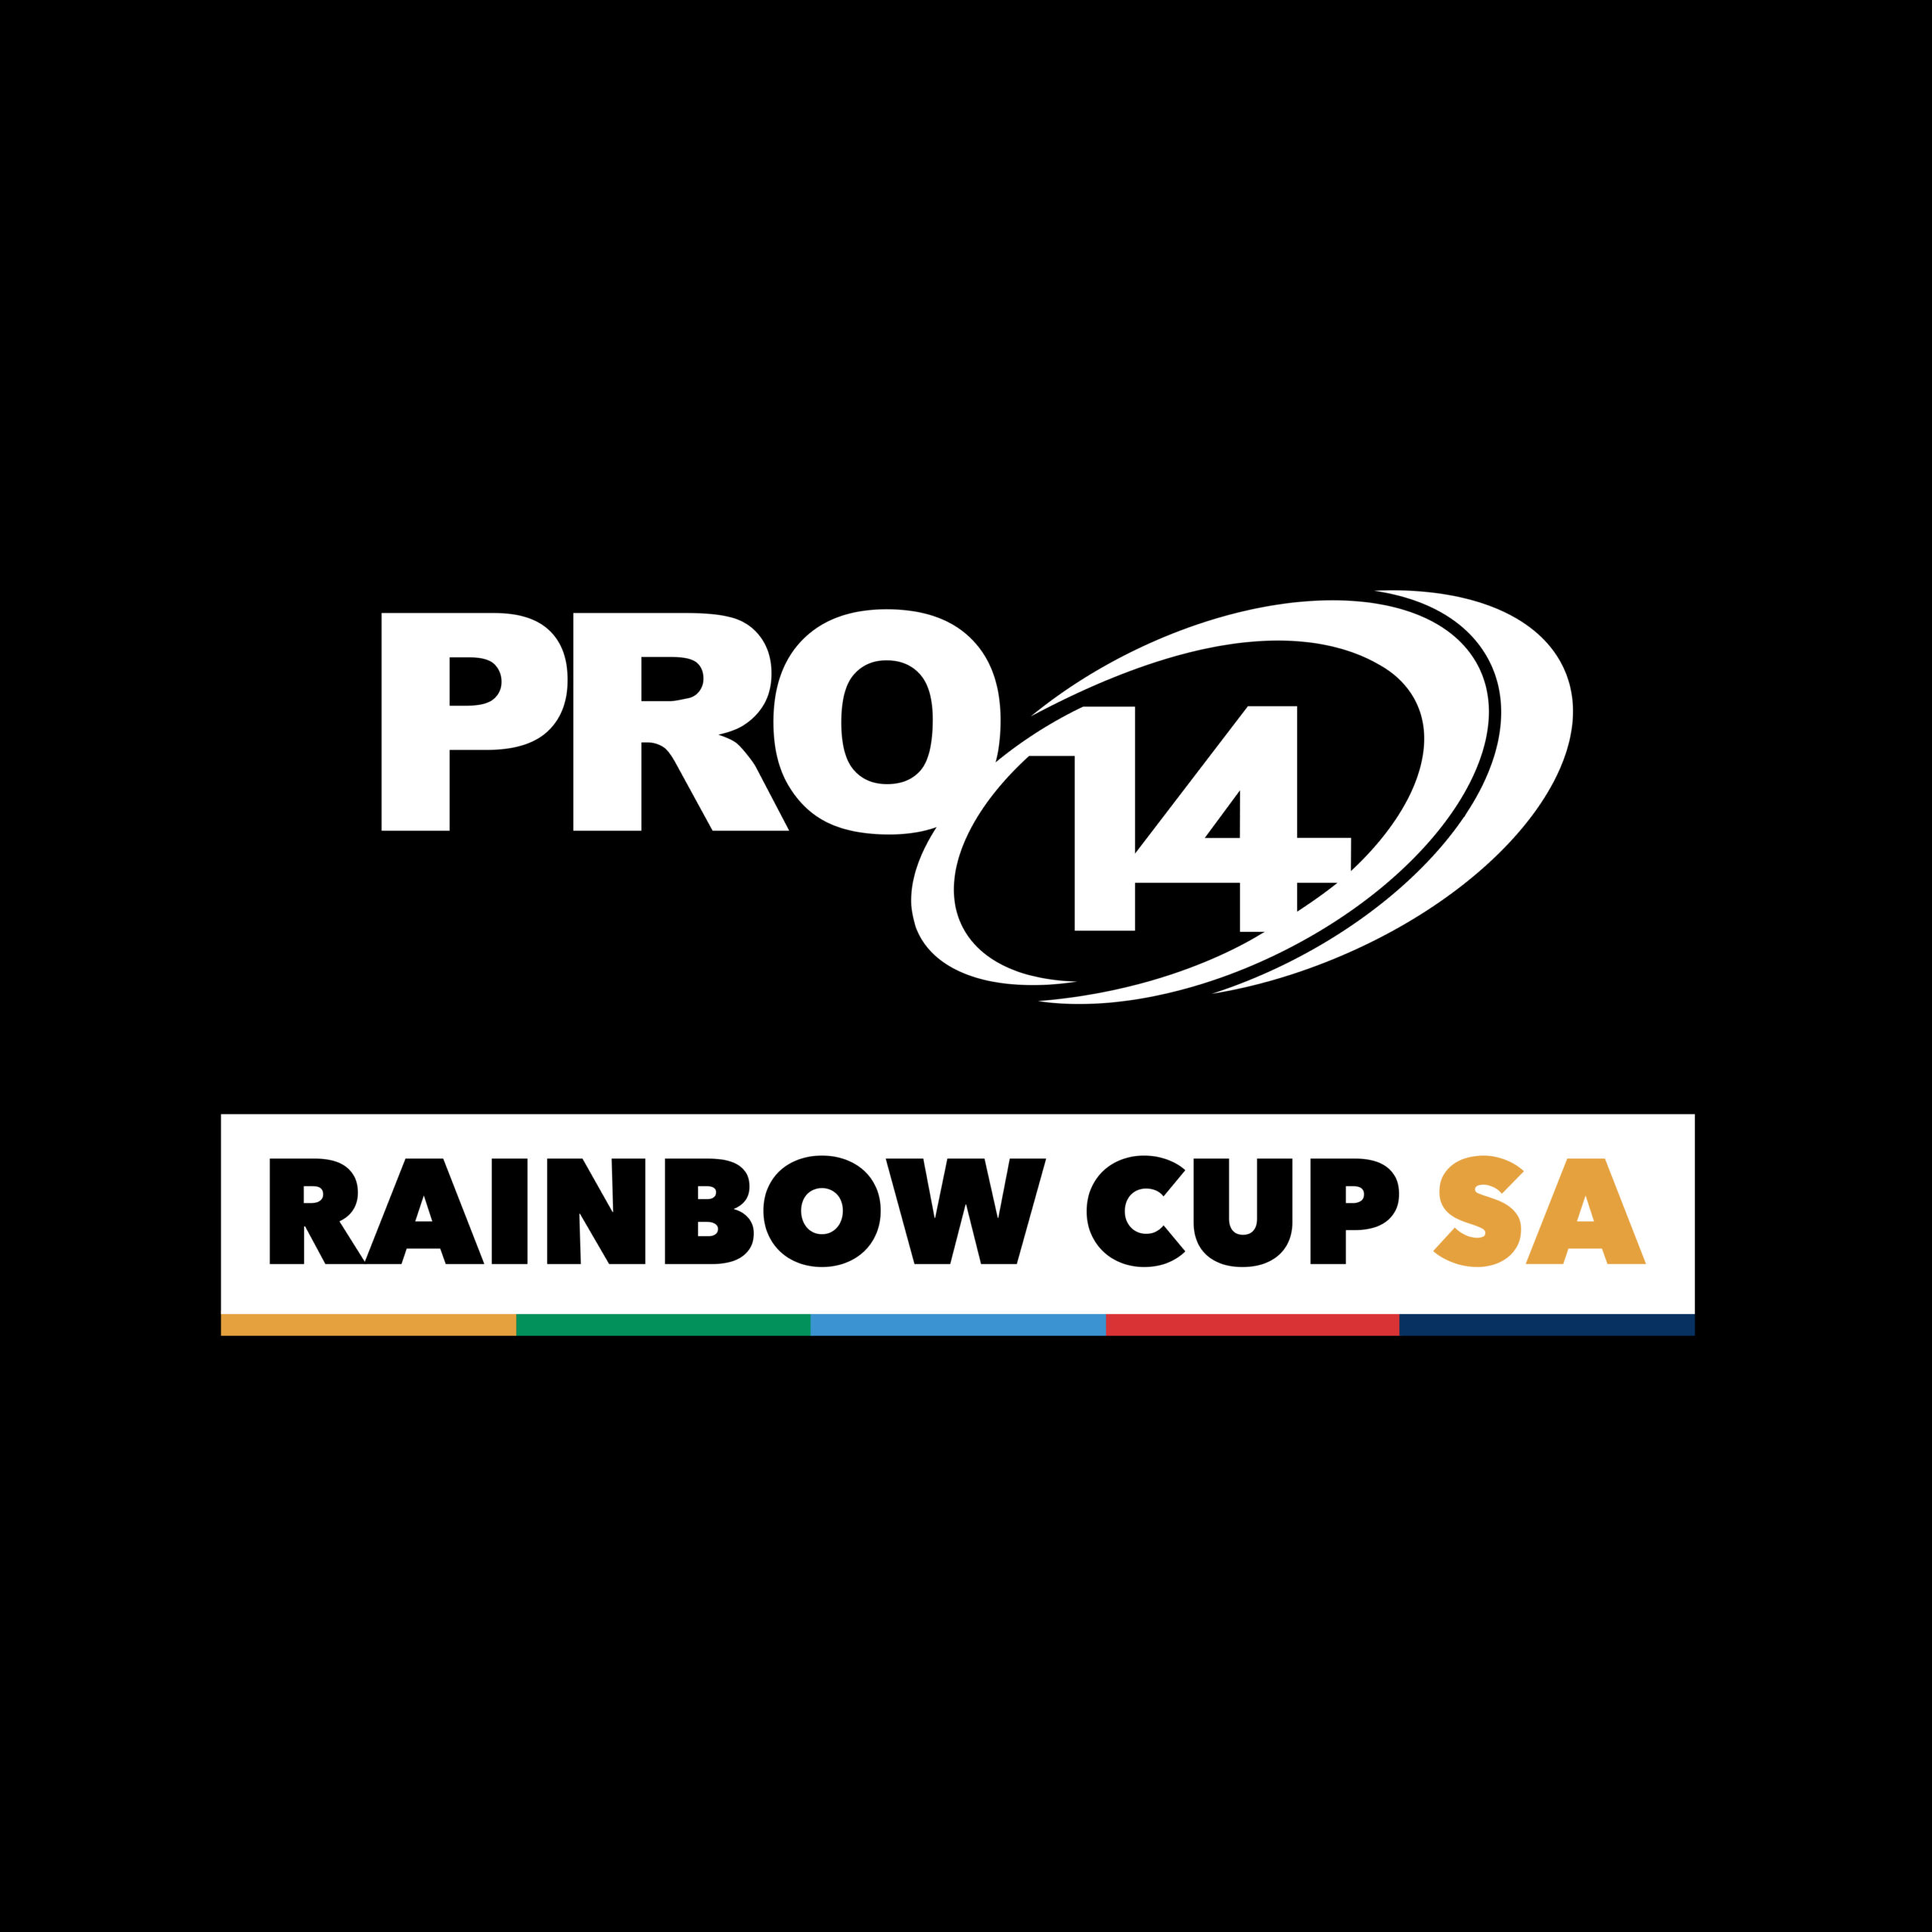 Confirmation of final four rounds of PRO14 Rainbow Cup SA